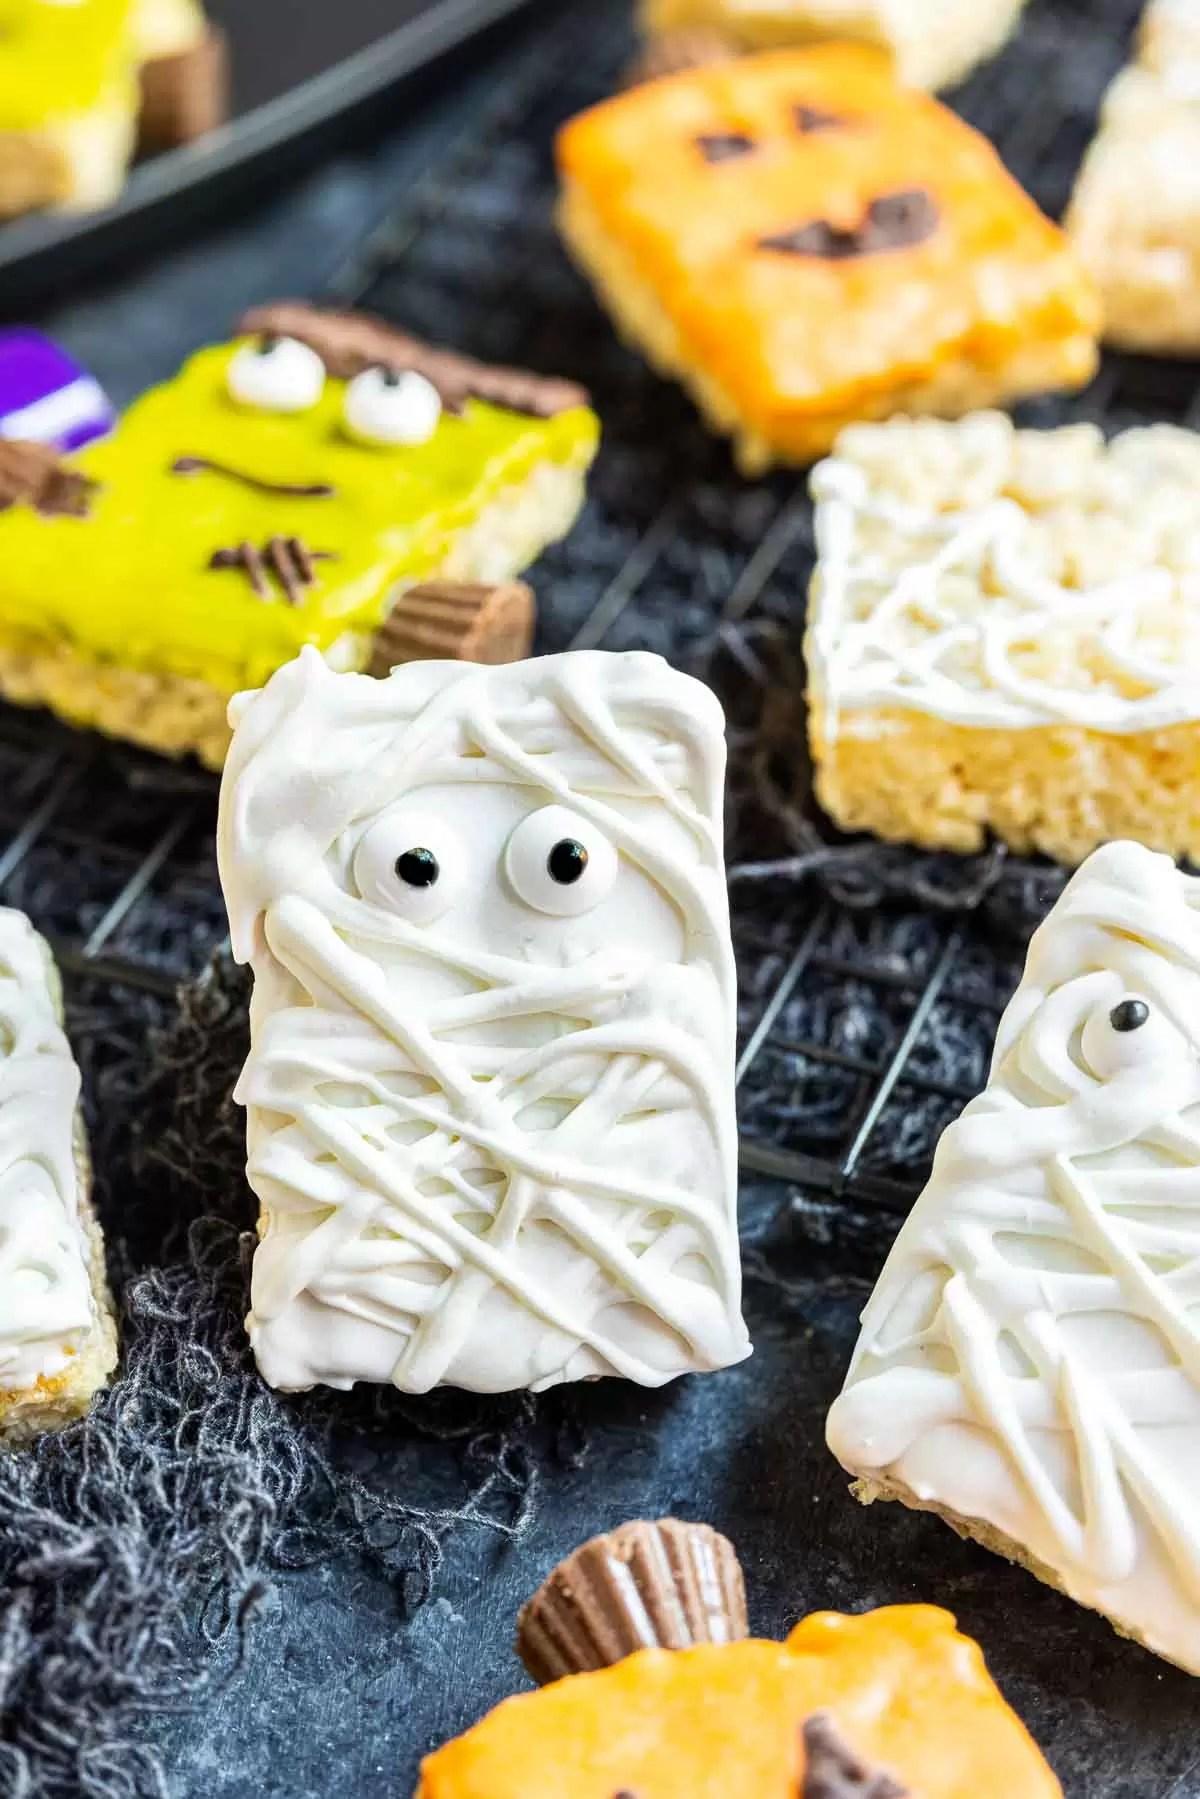 Mummy Rice Krispies Treats decorated with colored candy melts